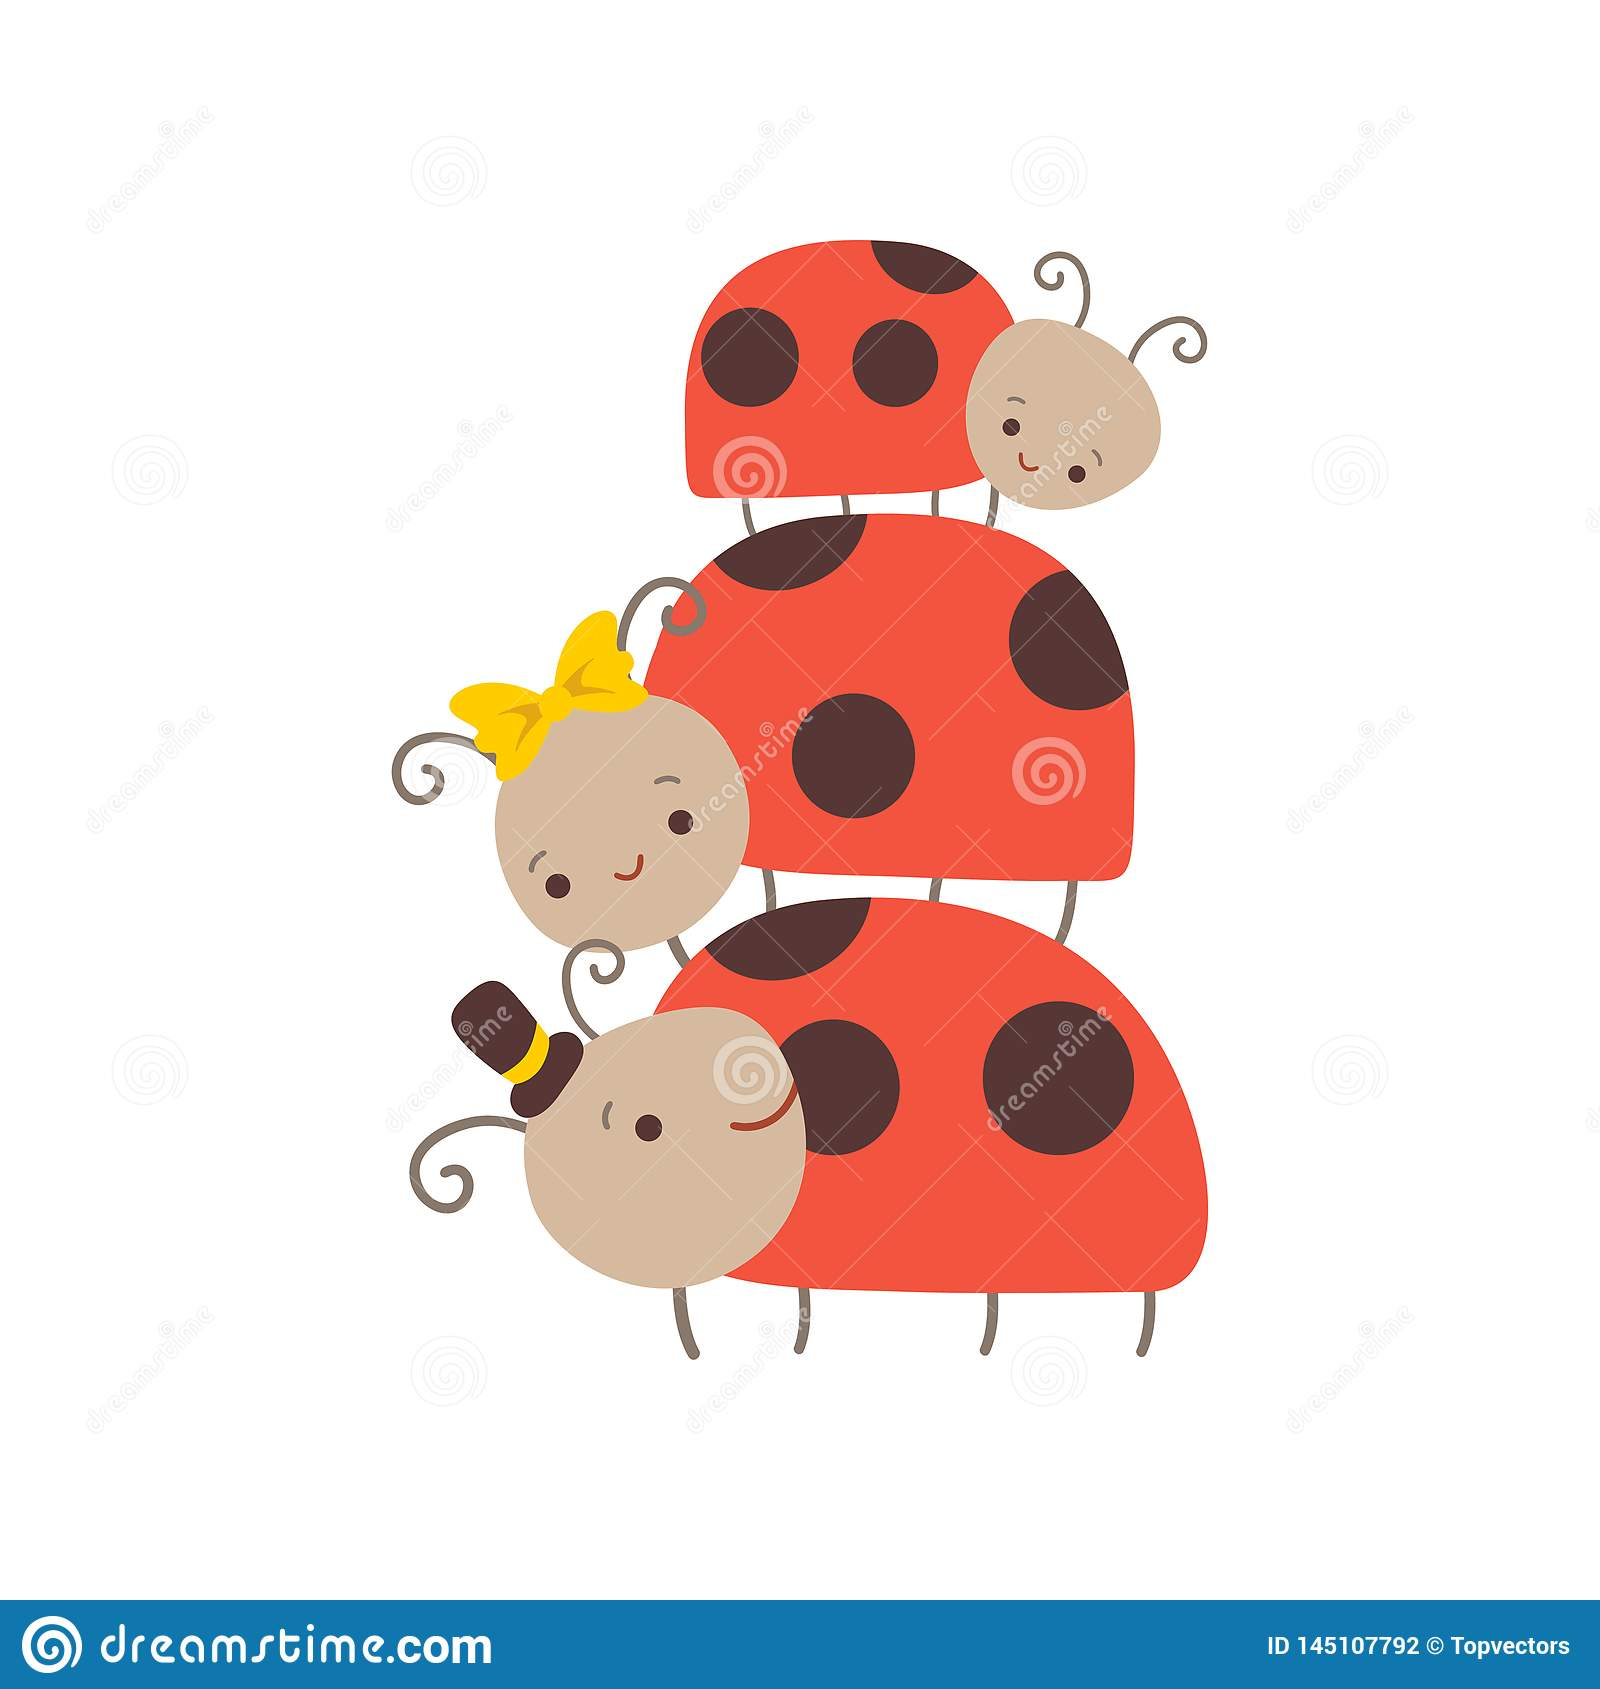 A Cartoon Ladybug happy ladybug family, father, mother ladybugs and their baby